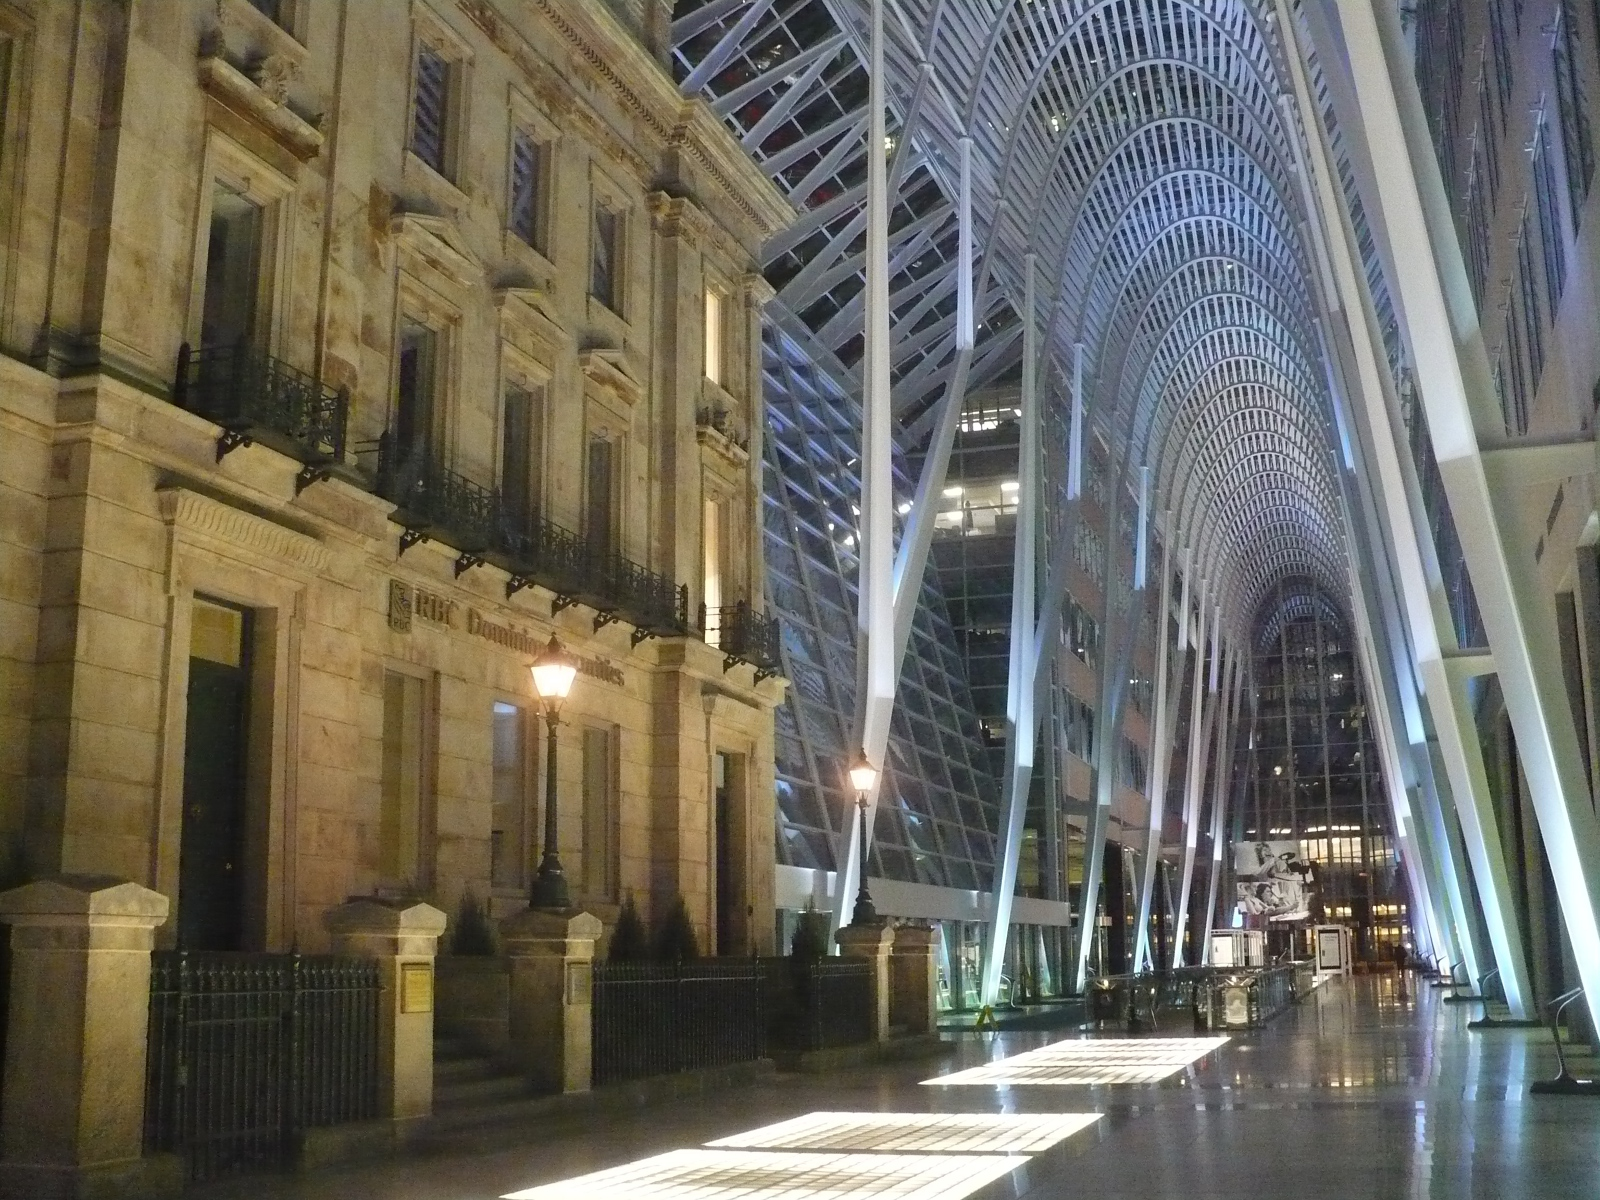 Allen Lambert Galleria is an atrium that connects Sam Pollock Square with the rest of the Financial District. A neo-futuristic design by Santiago Calatrava, ...